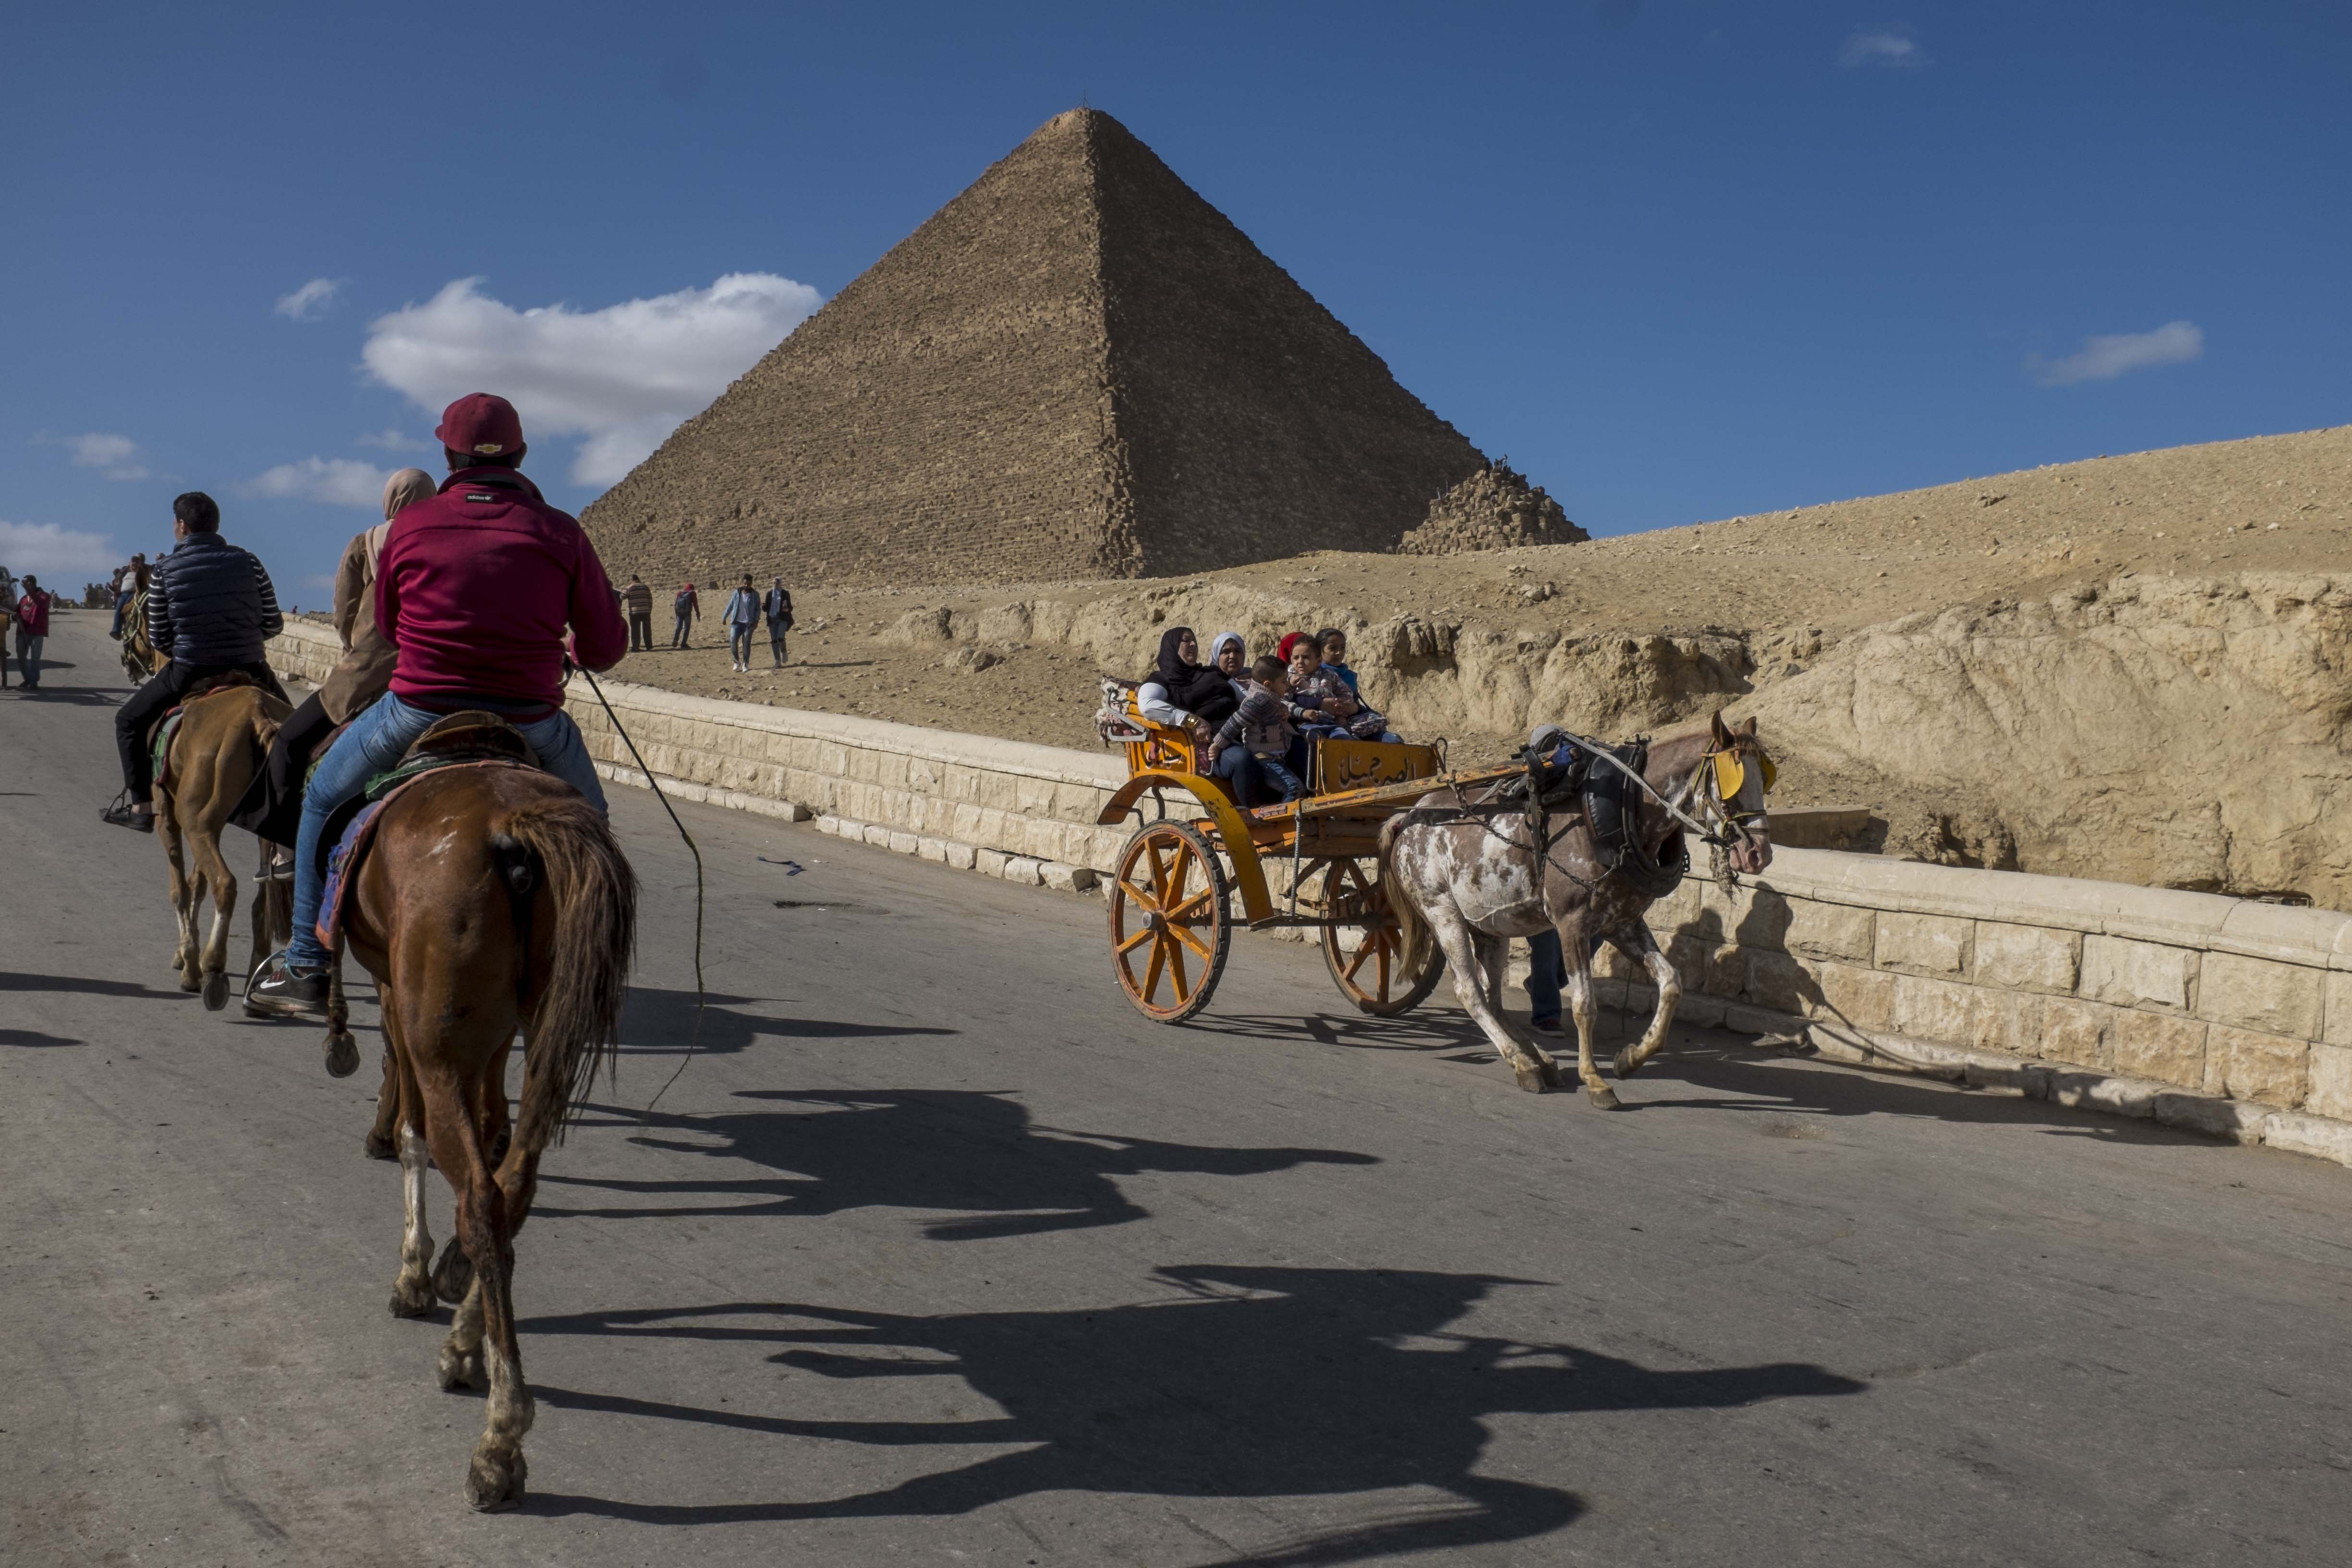 Tourists ride on horses and carriages near the Egyptian pyramids.